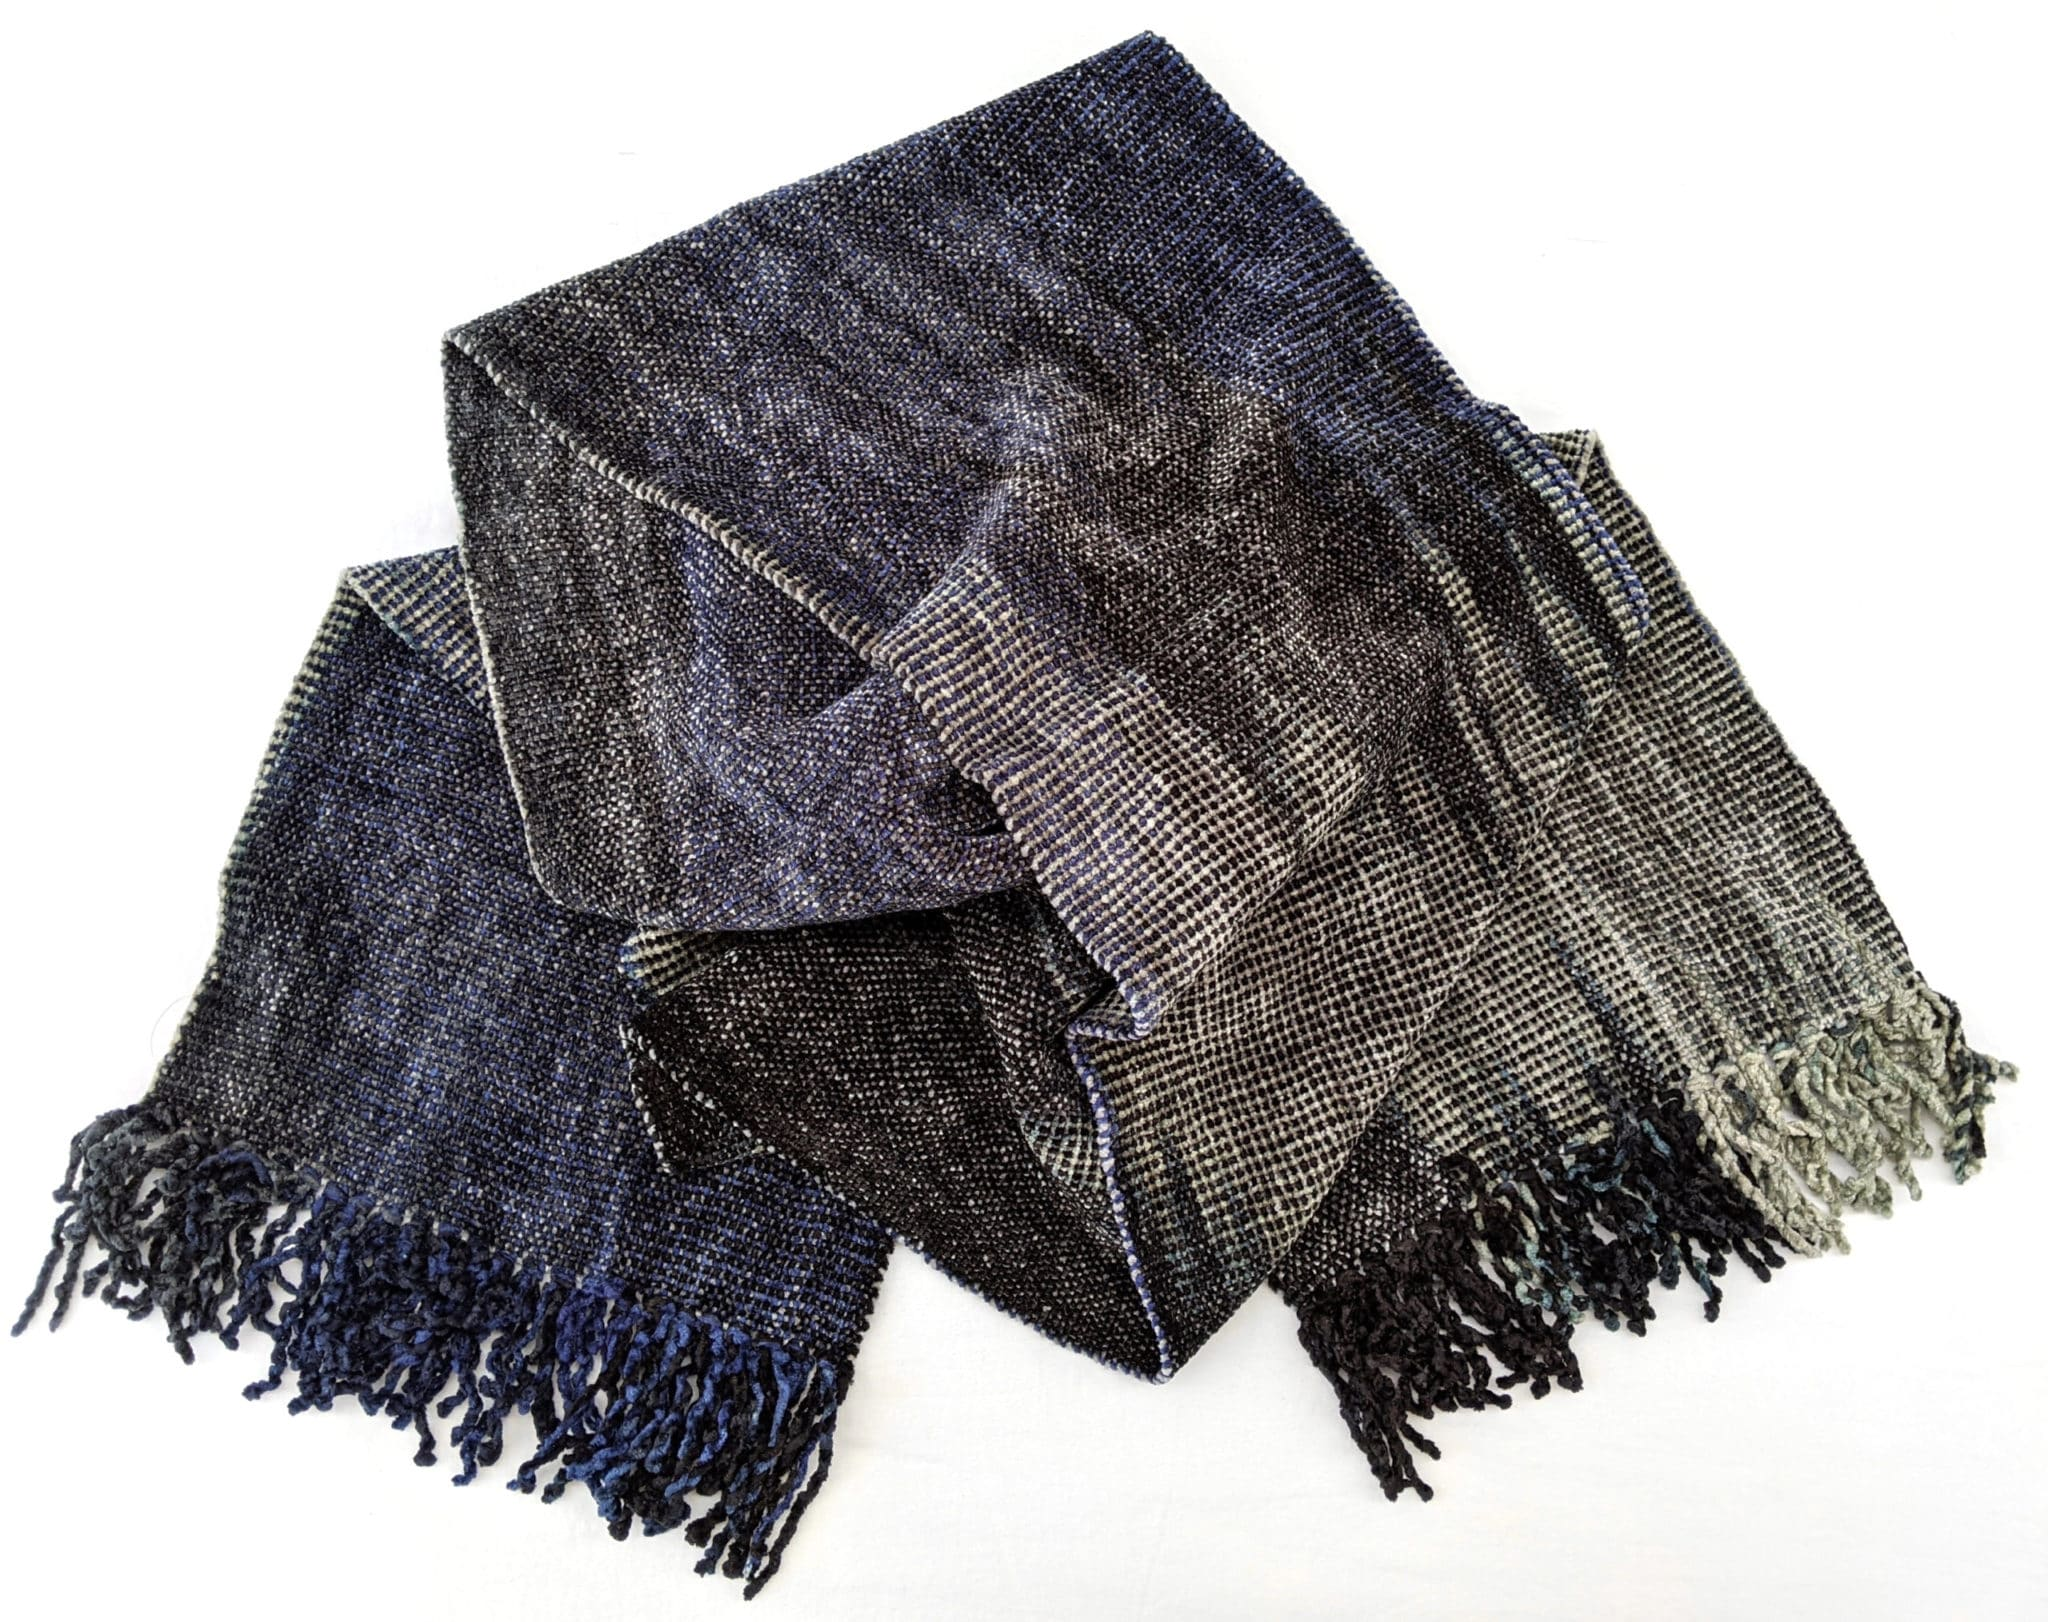 Blue, Grays, Black - Bamboo Chenille Handwoven Scarf 8 x 68